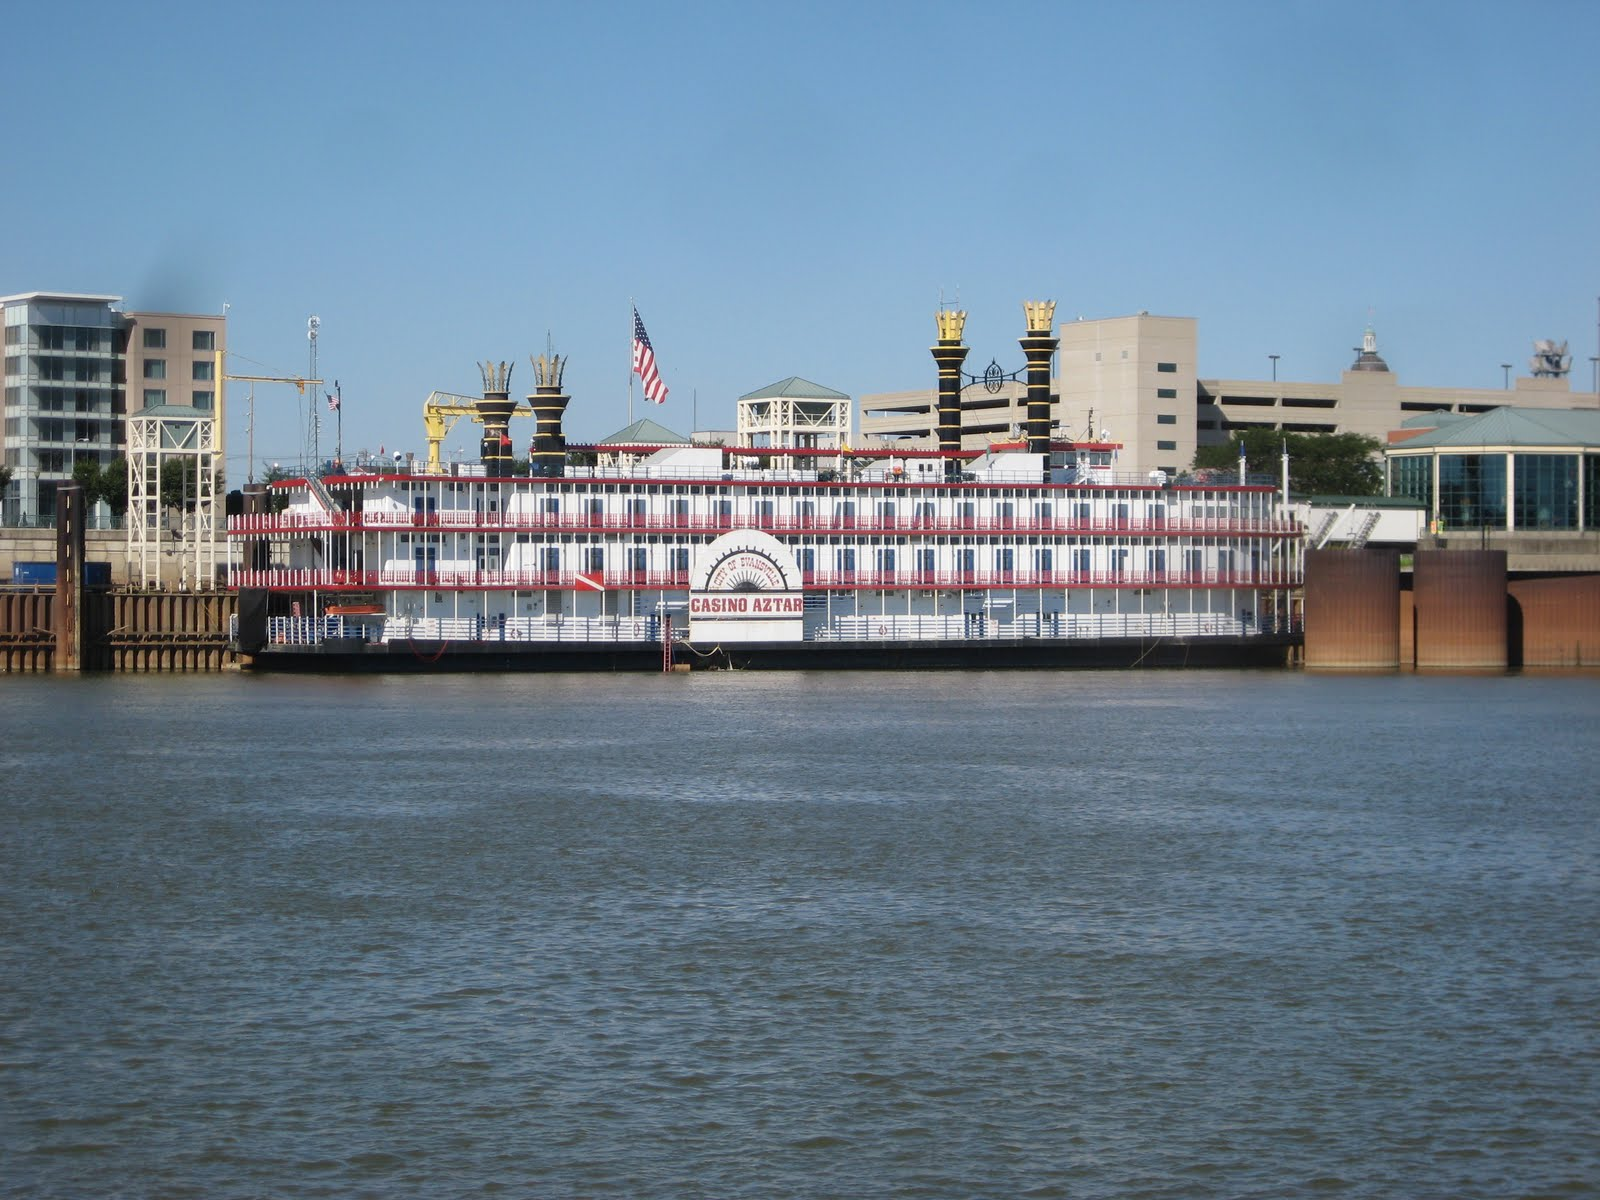 Ohio river gambling boats